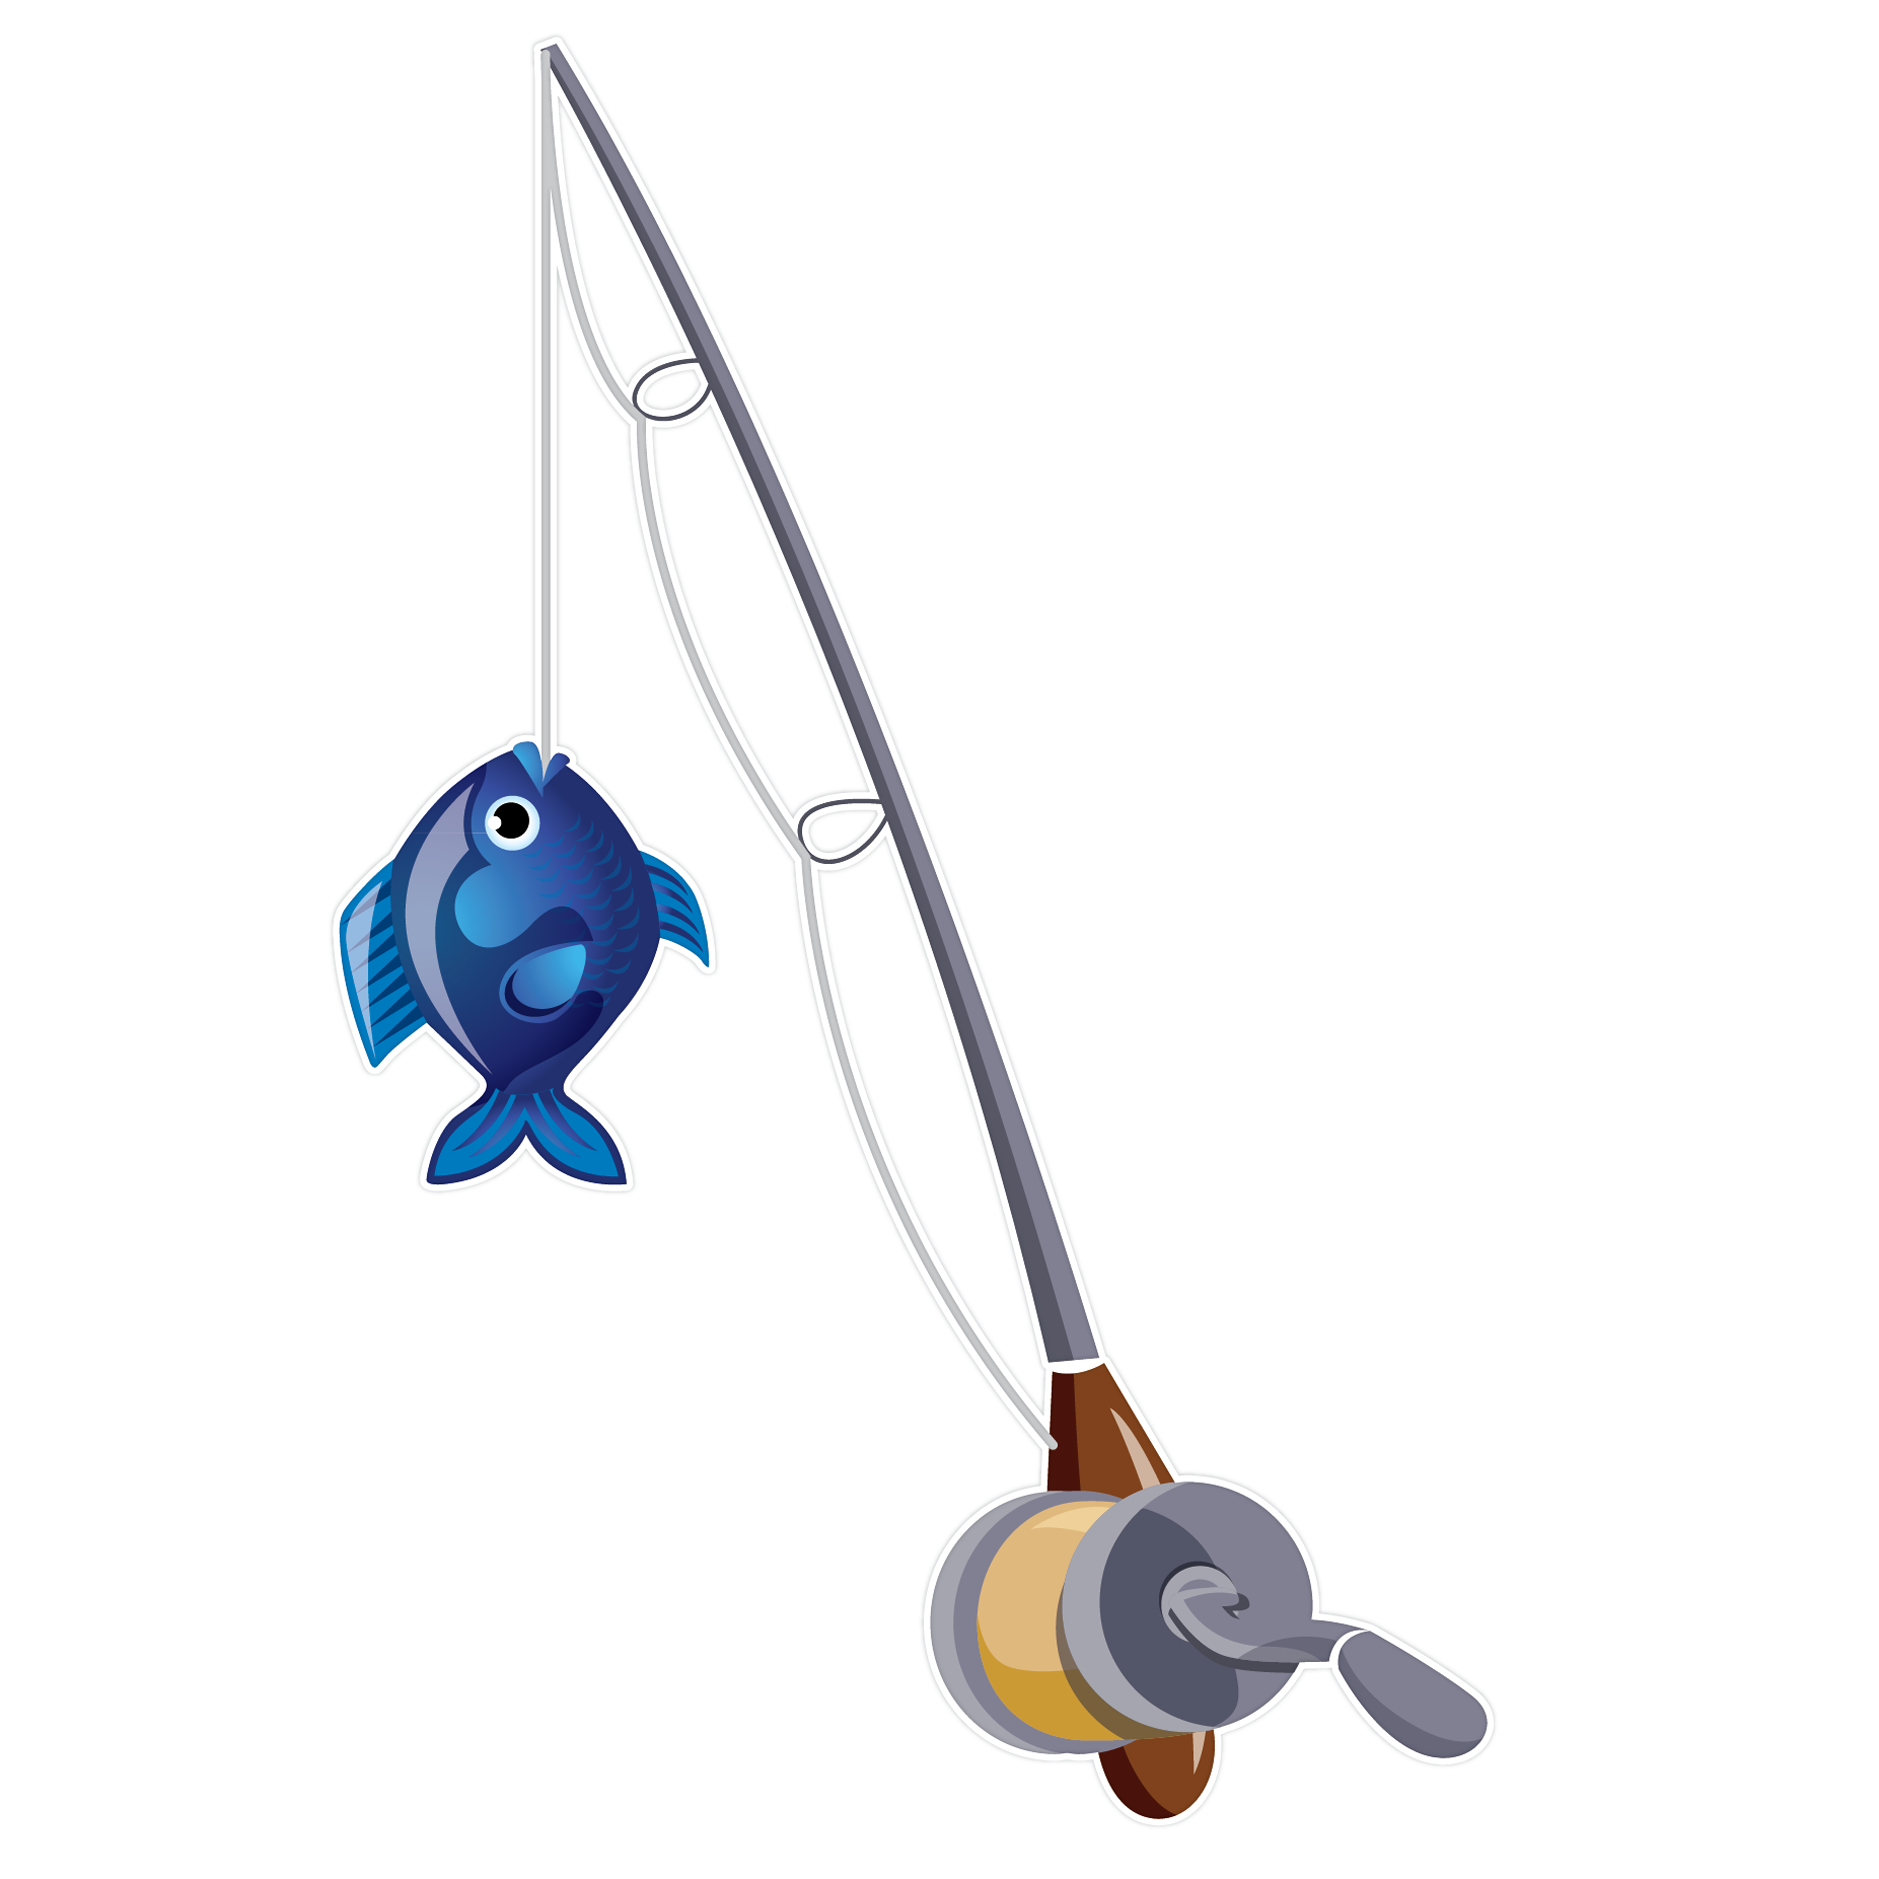 Fishing Rod clipart #12